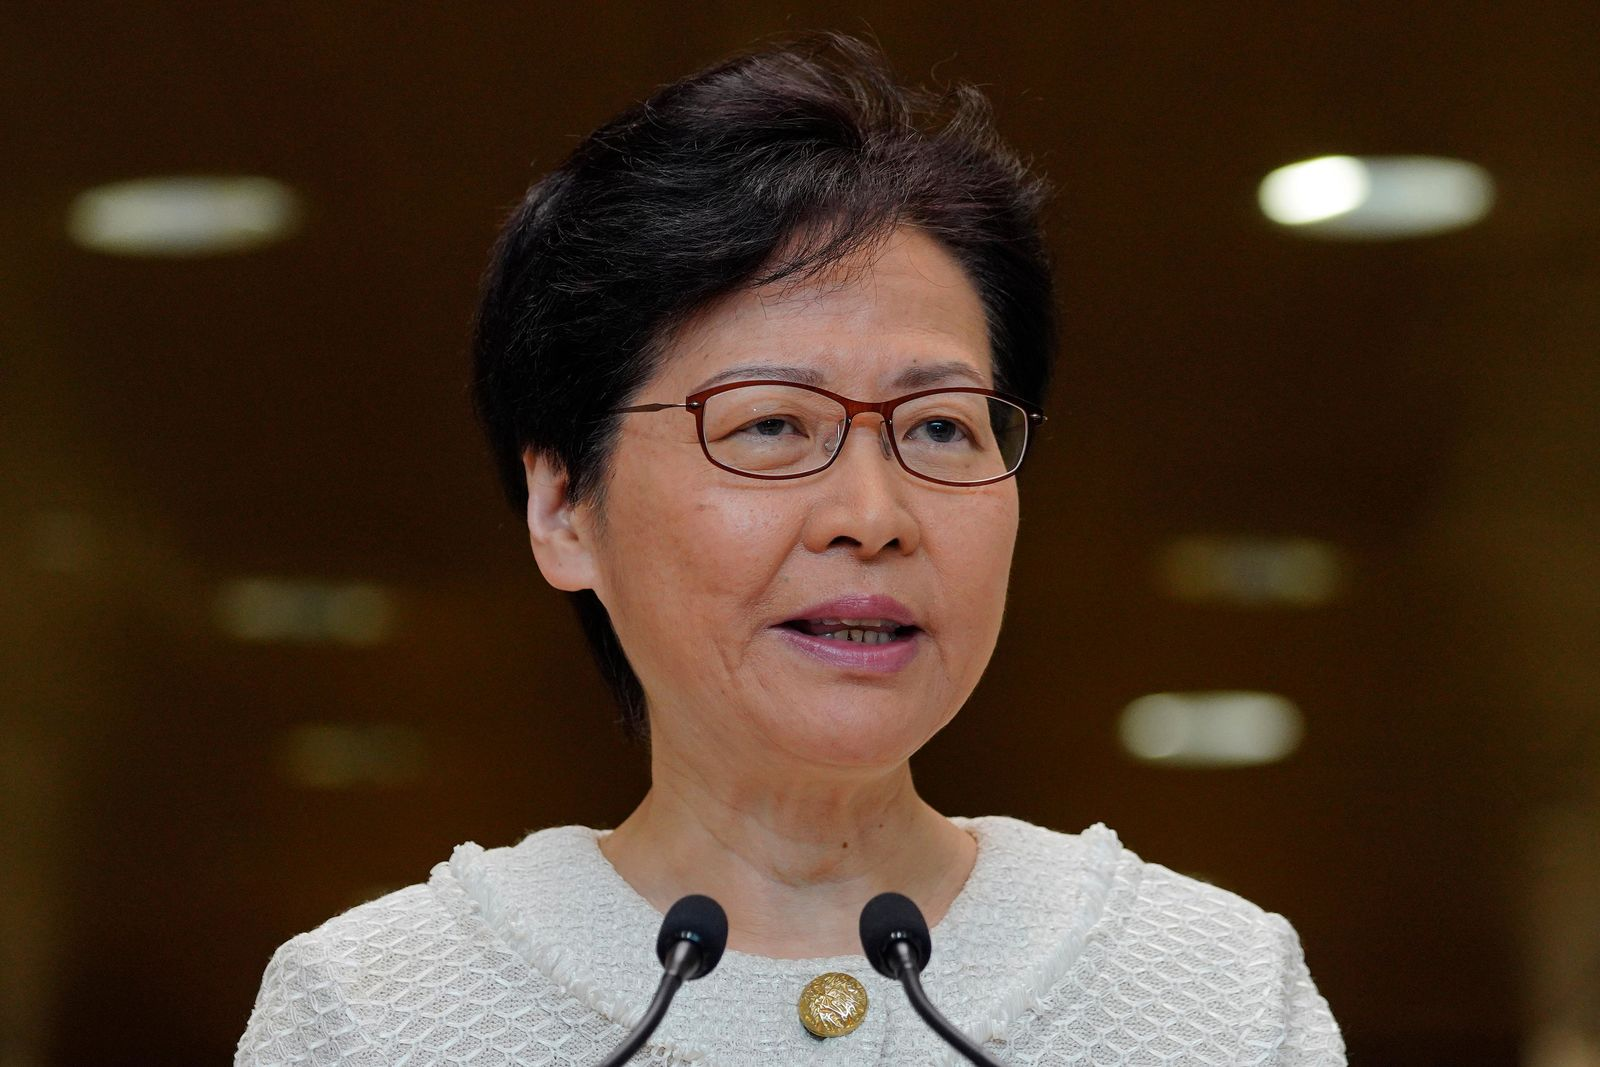 Hong Kong Chief Executive Carrie Lam, talks during a press conference at the government building in Hong Kong Tuesday, Sept. 10, 2019.{ } (AP Photo/Vincent Yu)